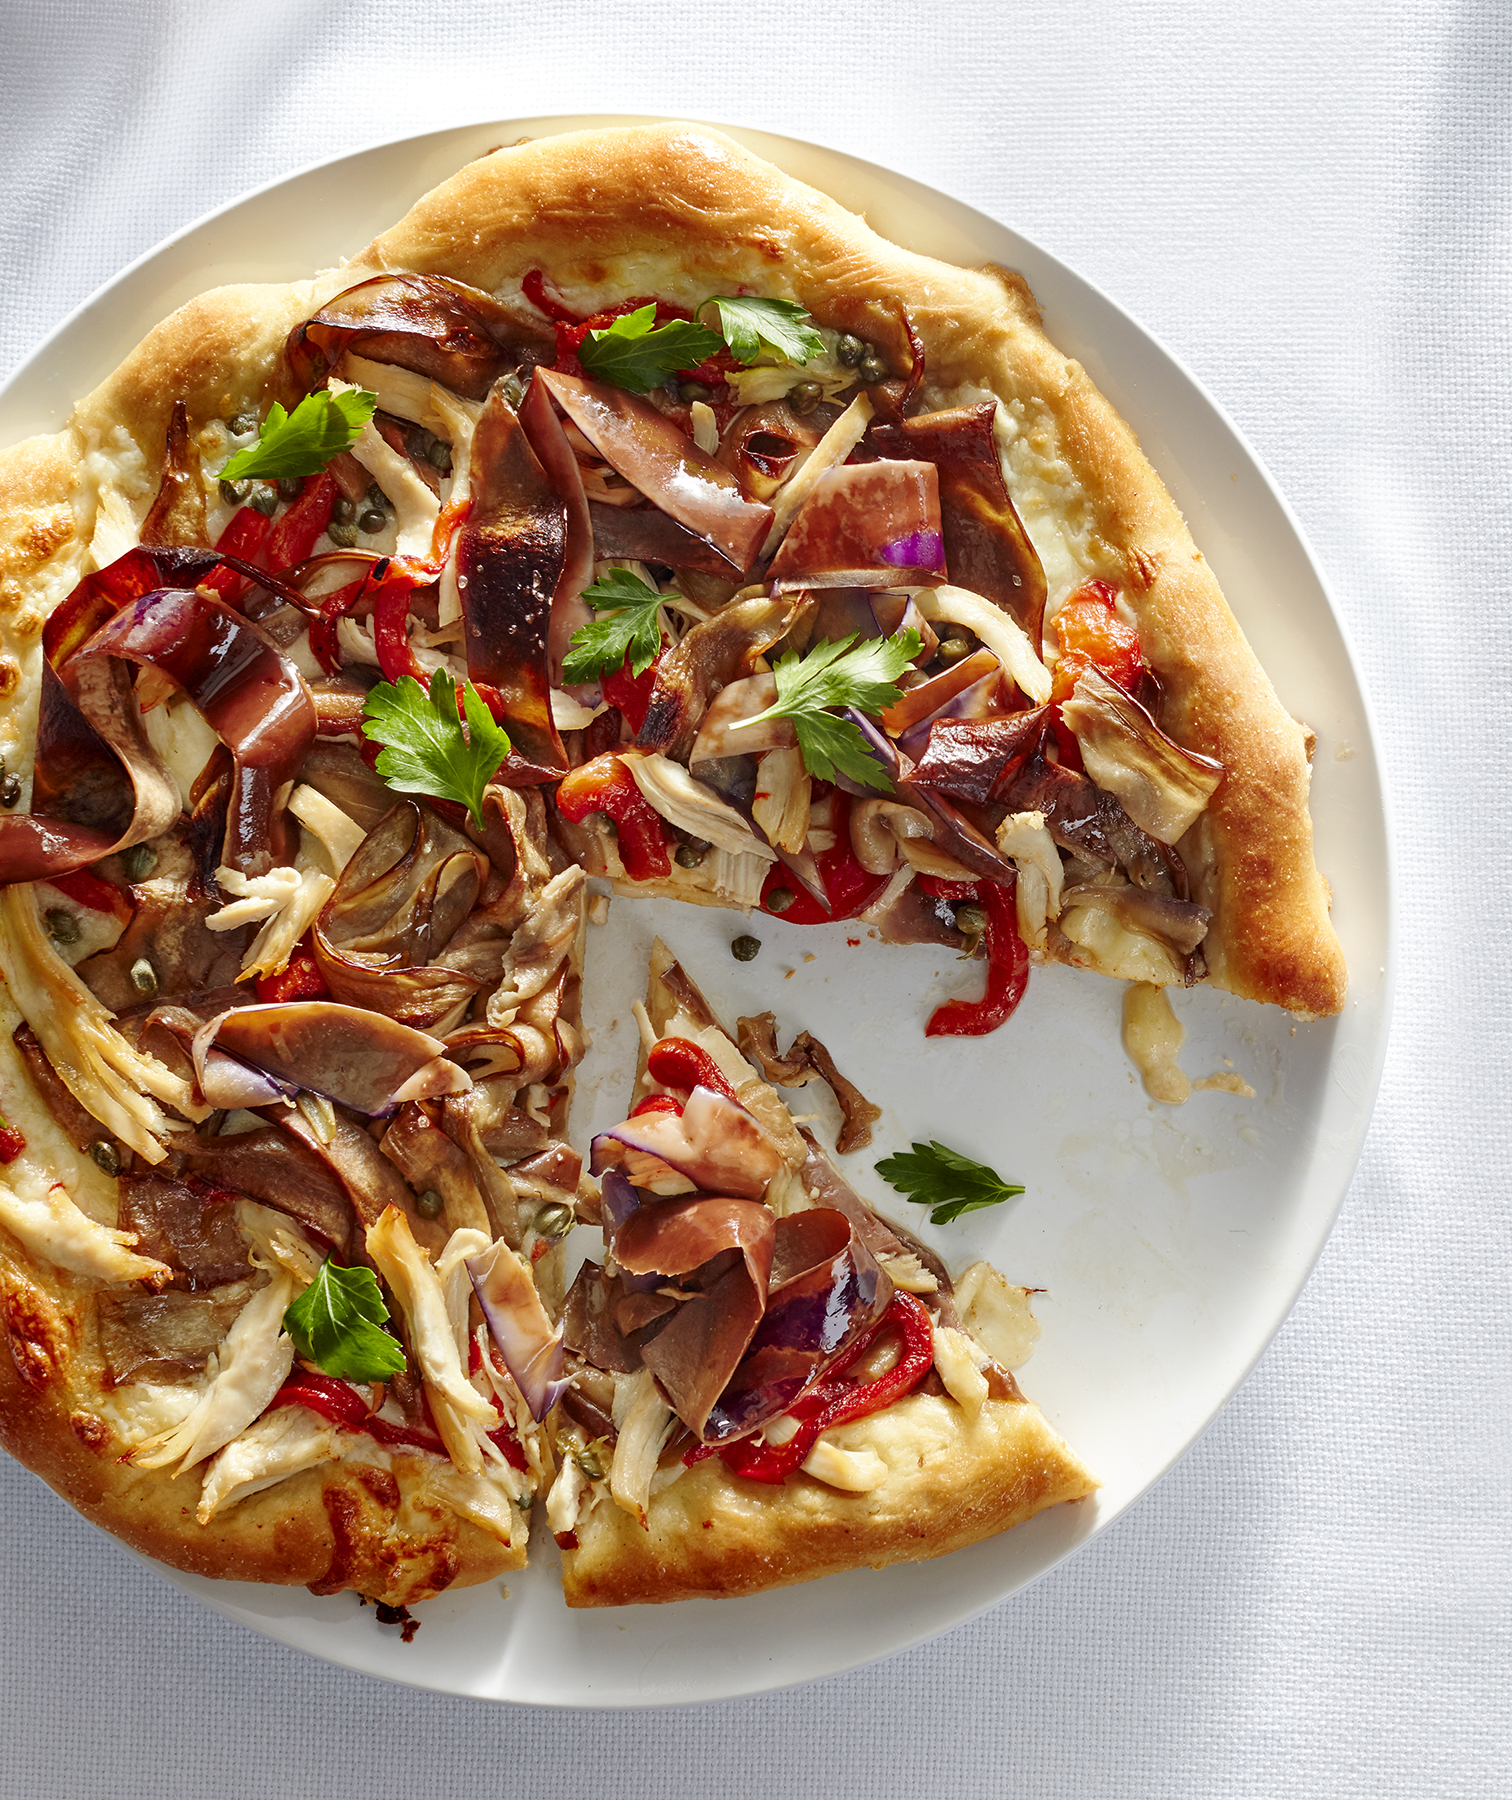 Eggplant and Chicken Caponata Pizza